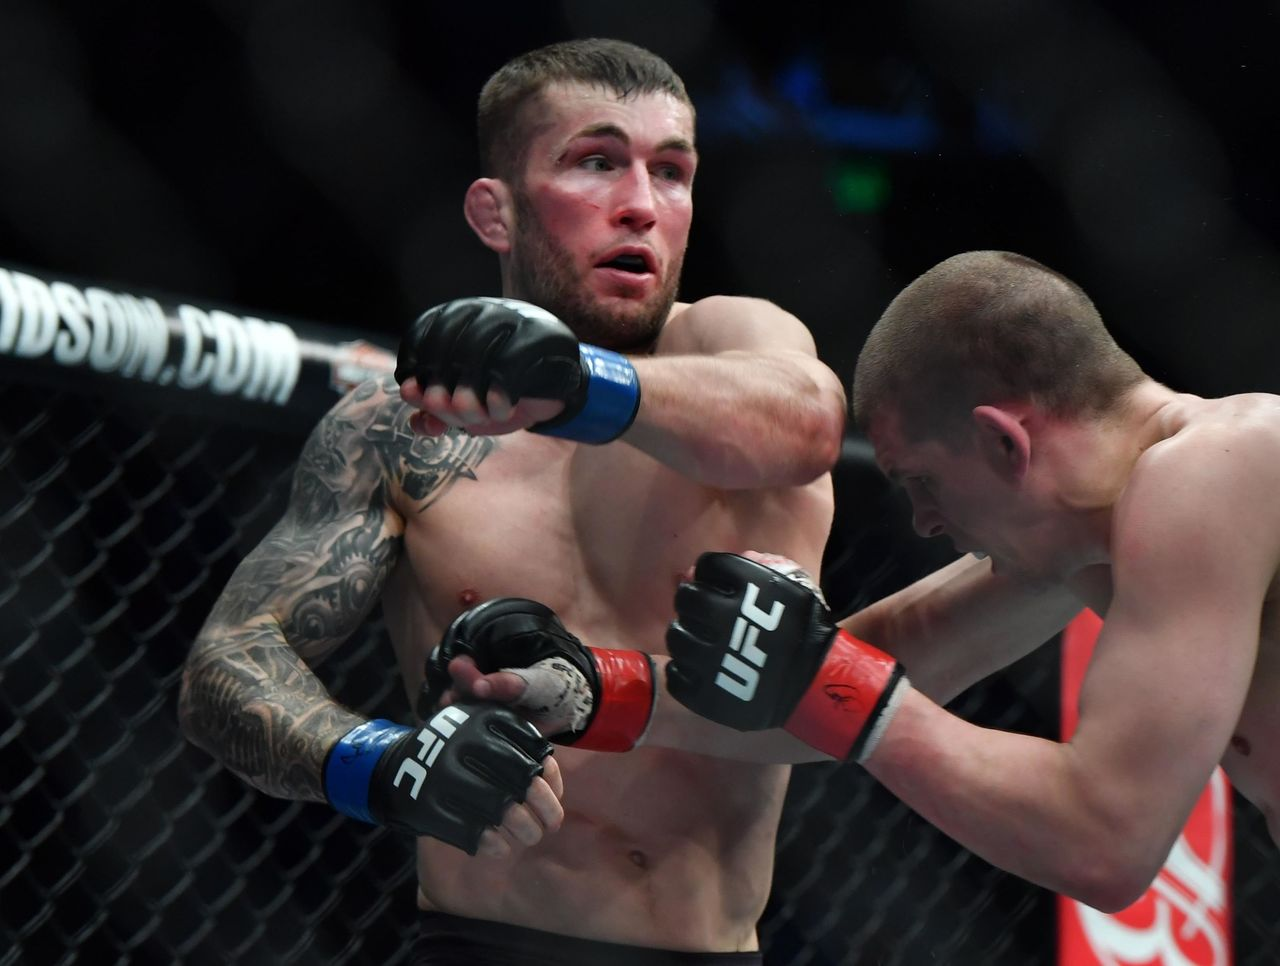 Cropped 2017 04 23t031214z 2028344727 nocid rtrmadp 3 mma ufc fight night lauzon vs ray